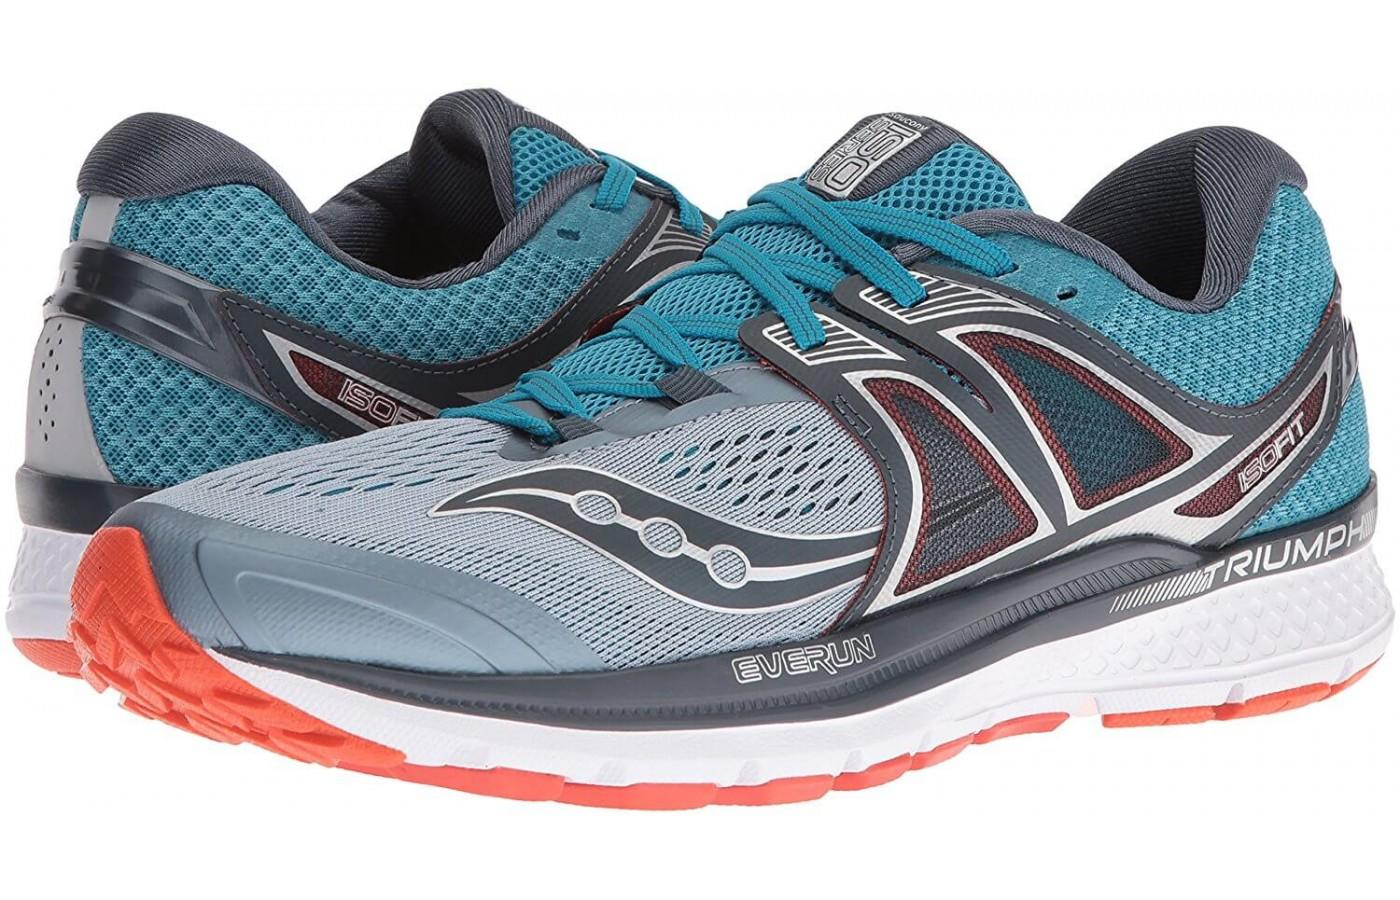 d121e226 Saucony Triumph ISO 3 Review - Buy or Not in July 2019?